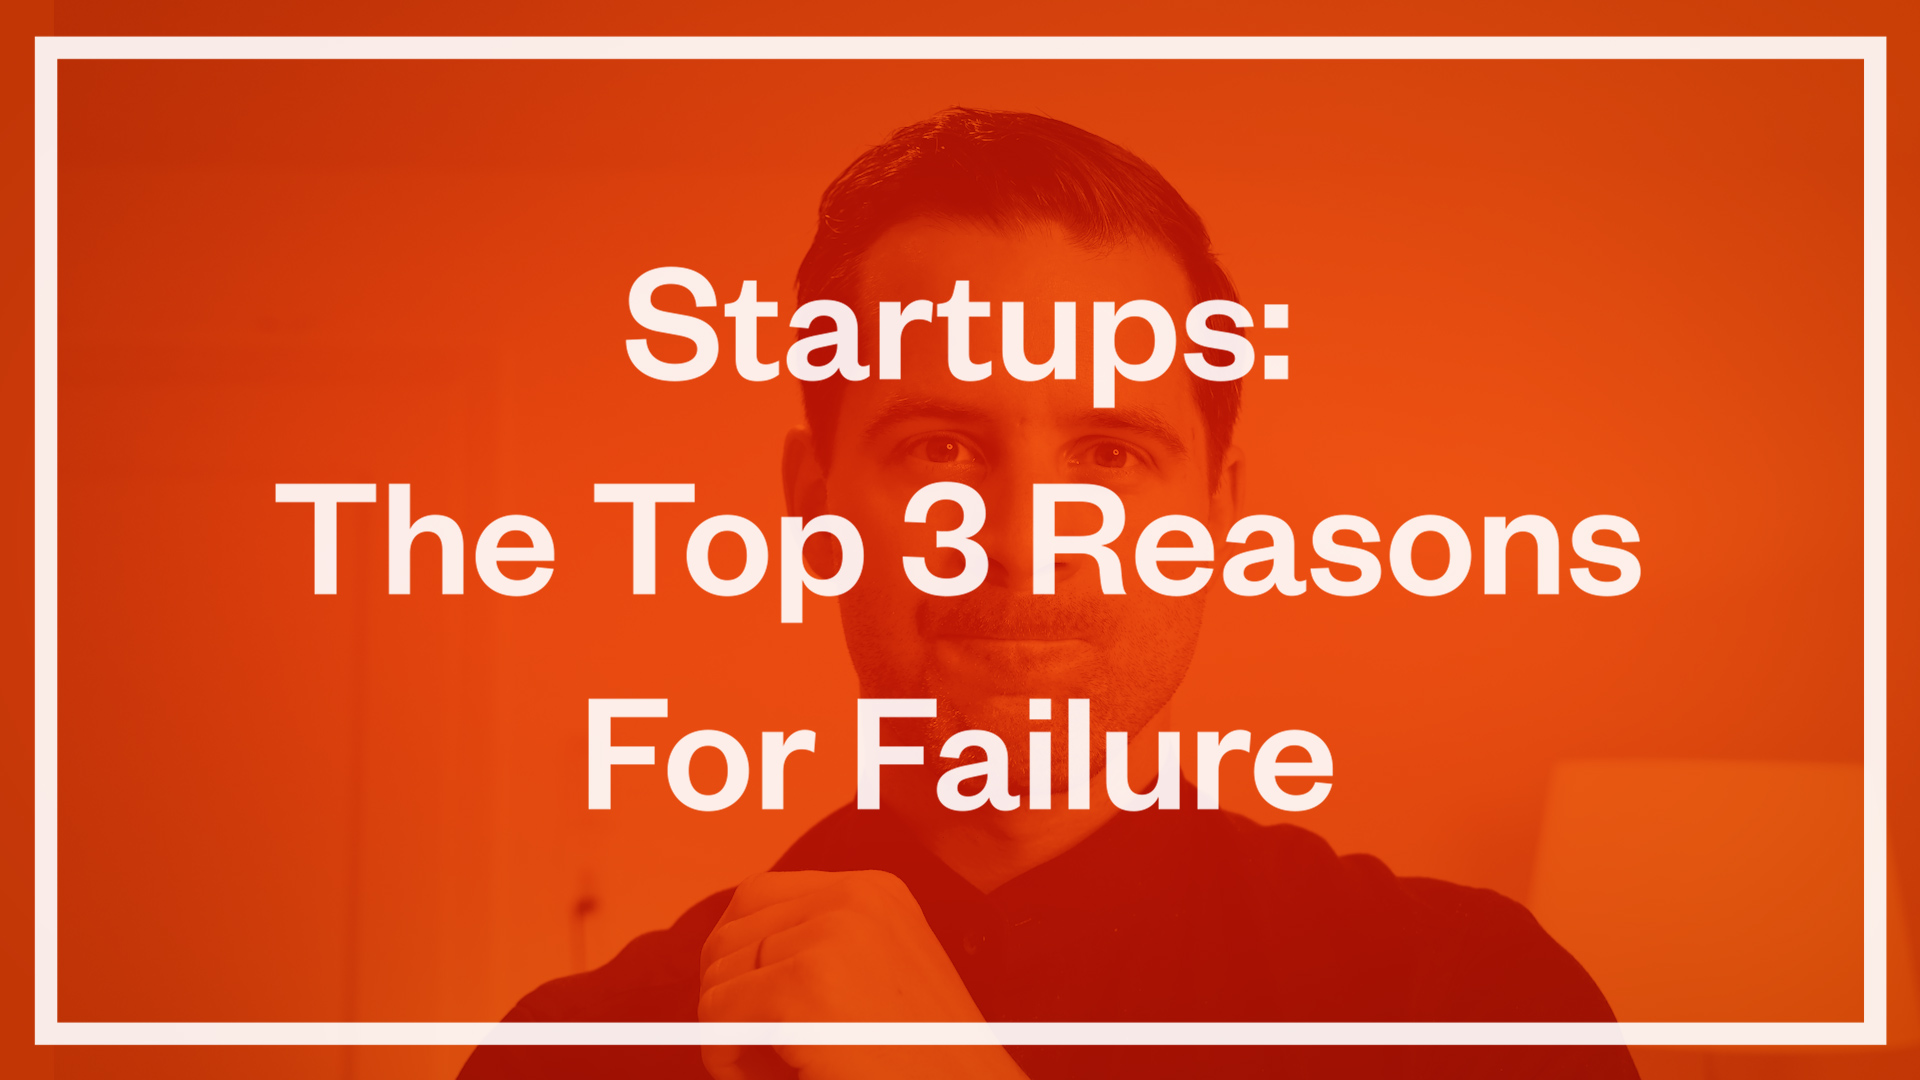 Startups: The Top 3 Reasons For Failure